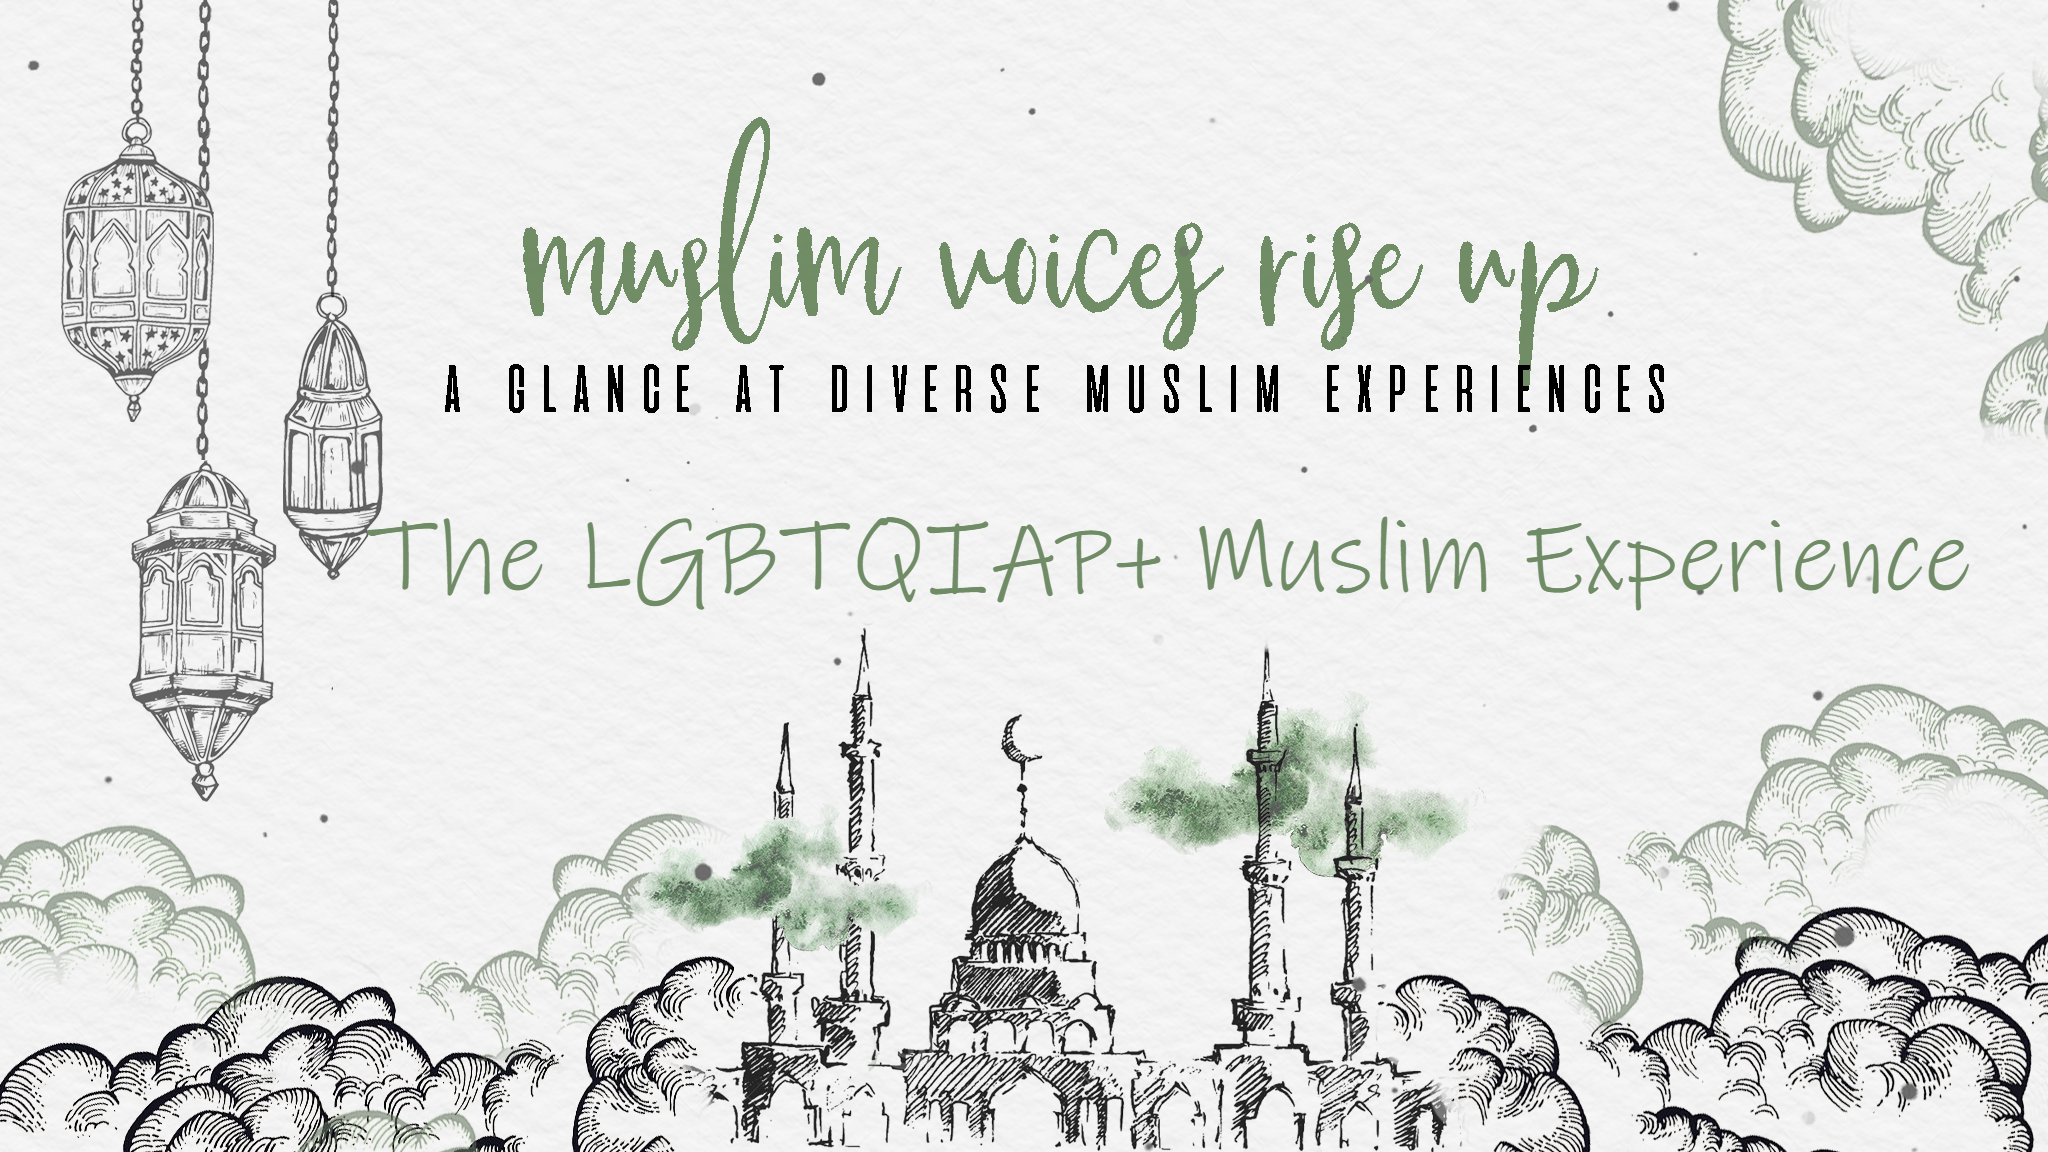 the lgbt muslim experience.png